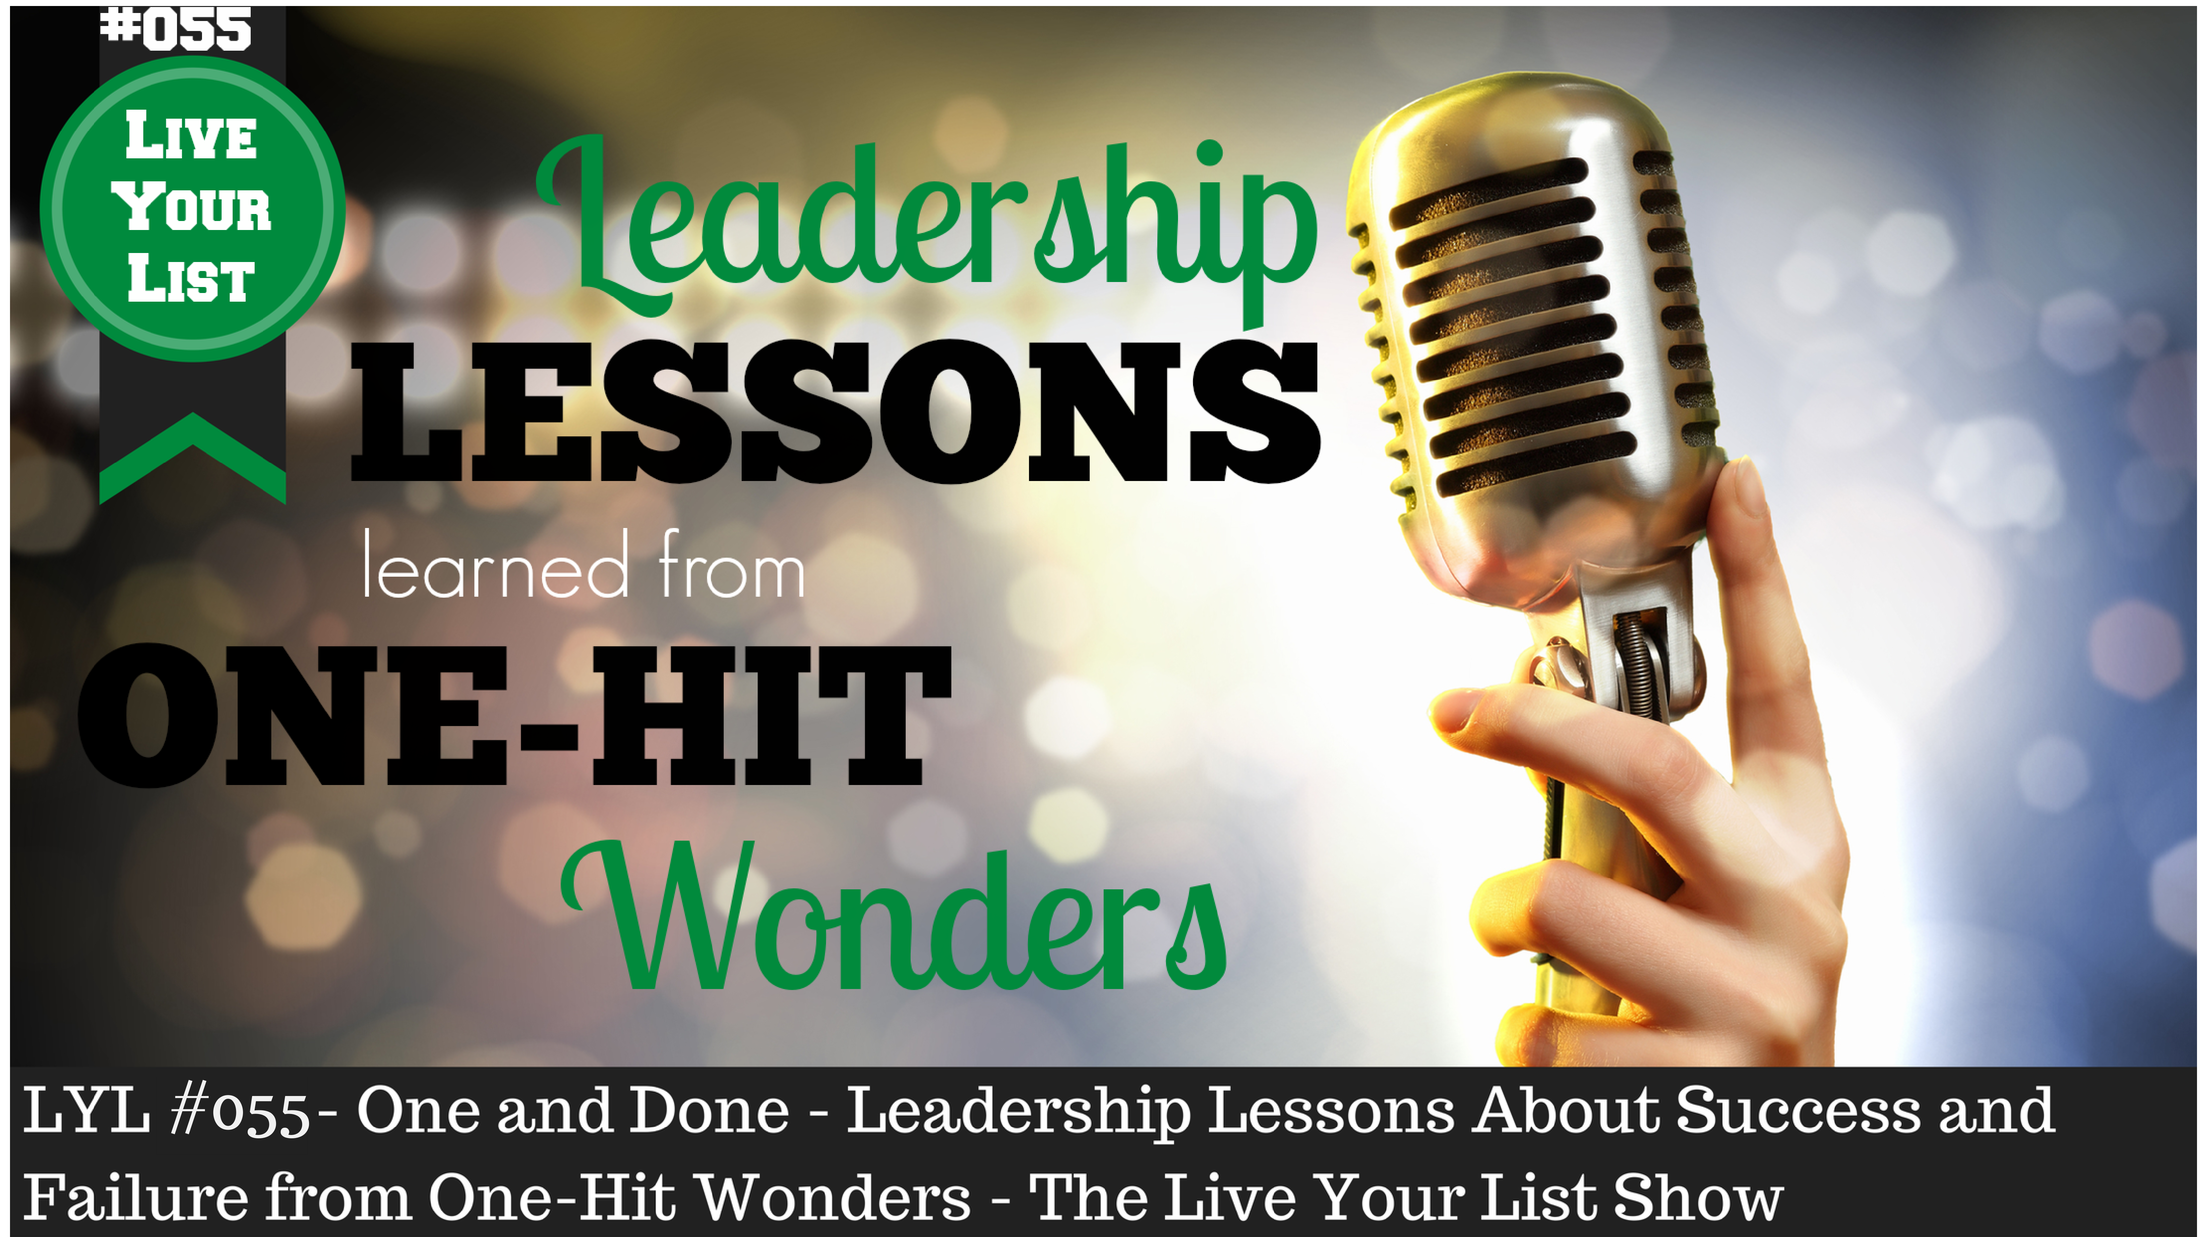 LYL #055 One and Done - Leadership Lessons About Success and Failure from One-Hit Wonders